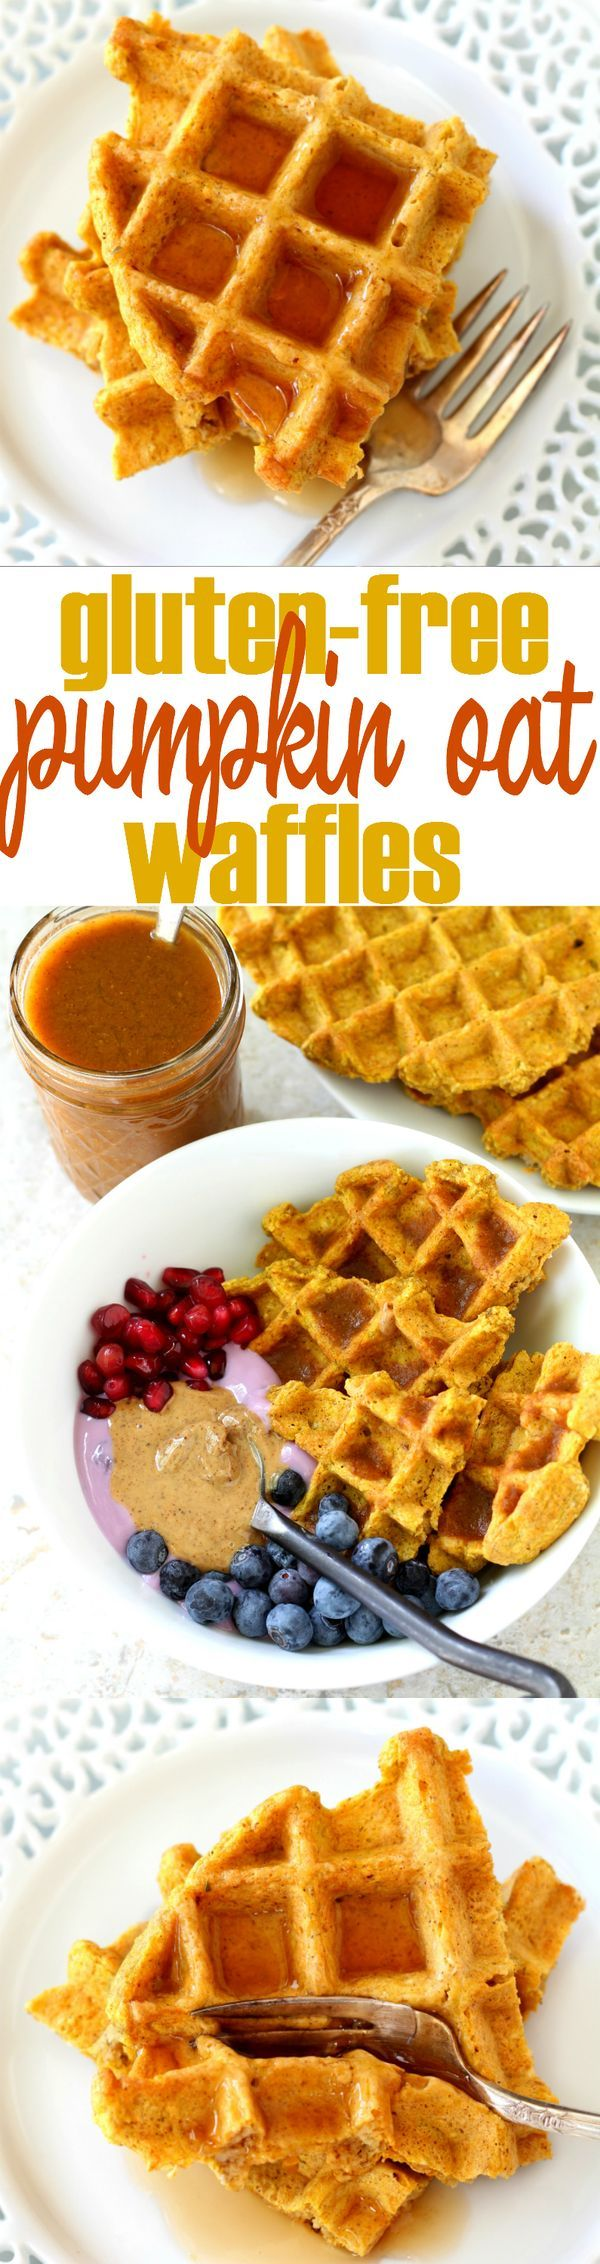 Gluten-Free Pumpkin Oat Waffles – loaded with delightful fall flavor without any of the guilt. Whip them up in the blender to get your morning started easily and deliciously!